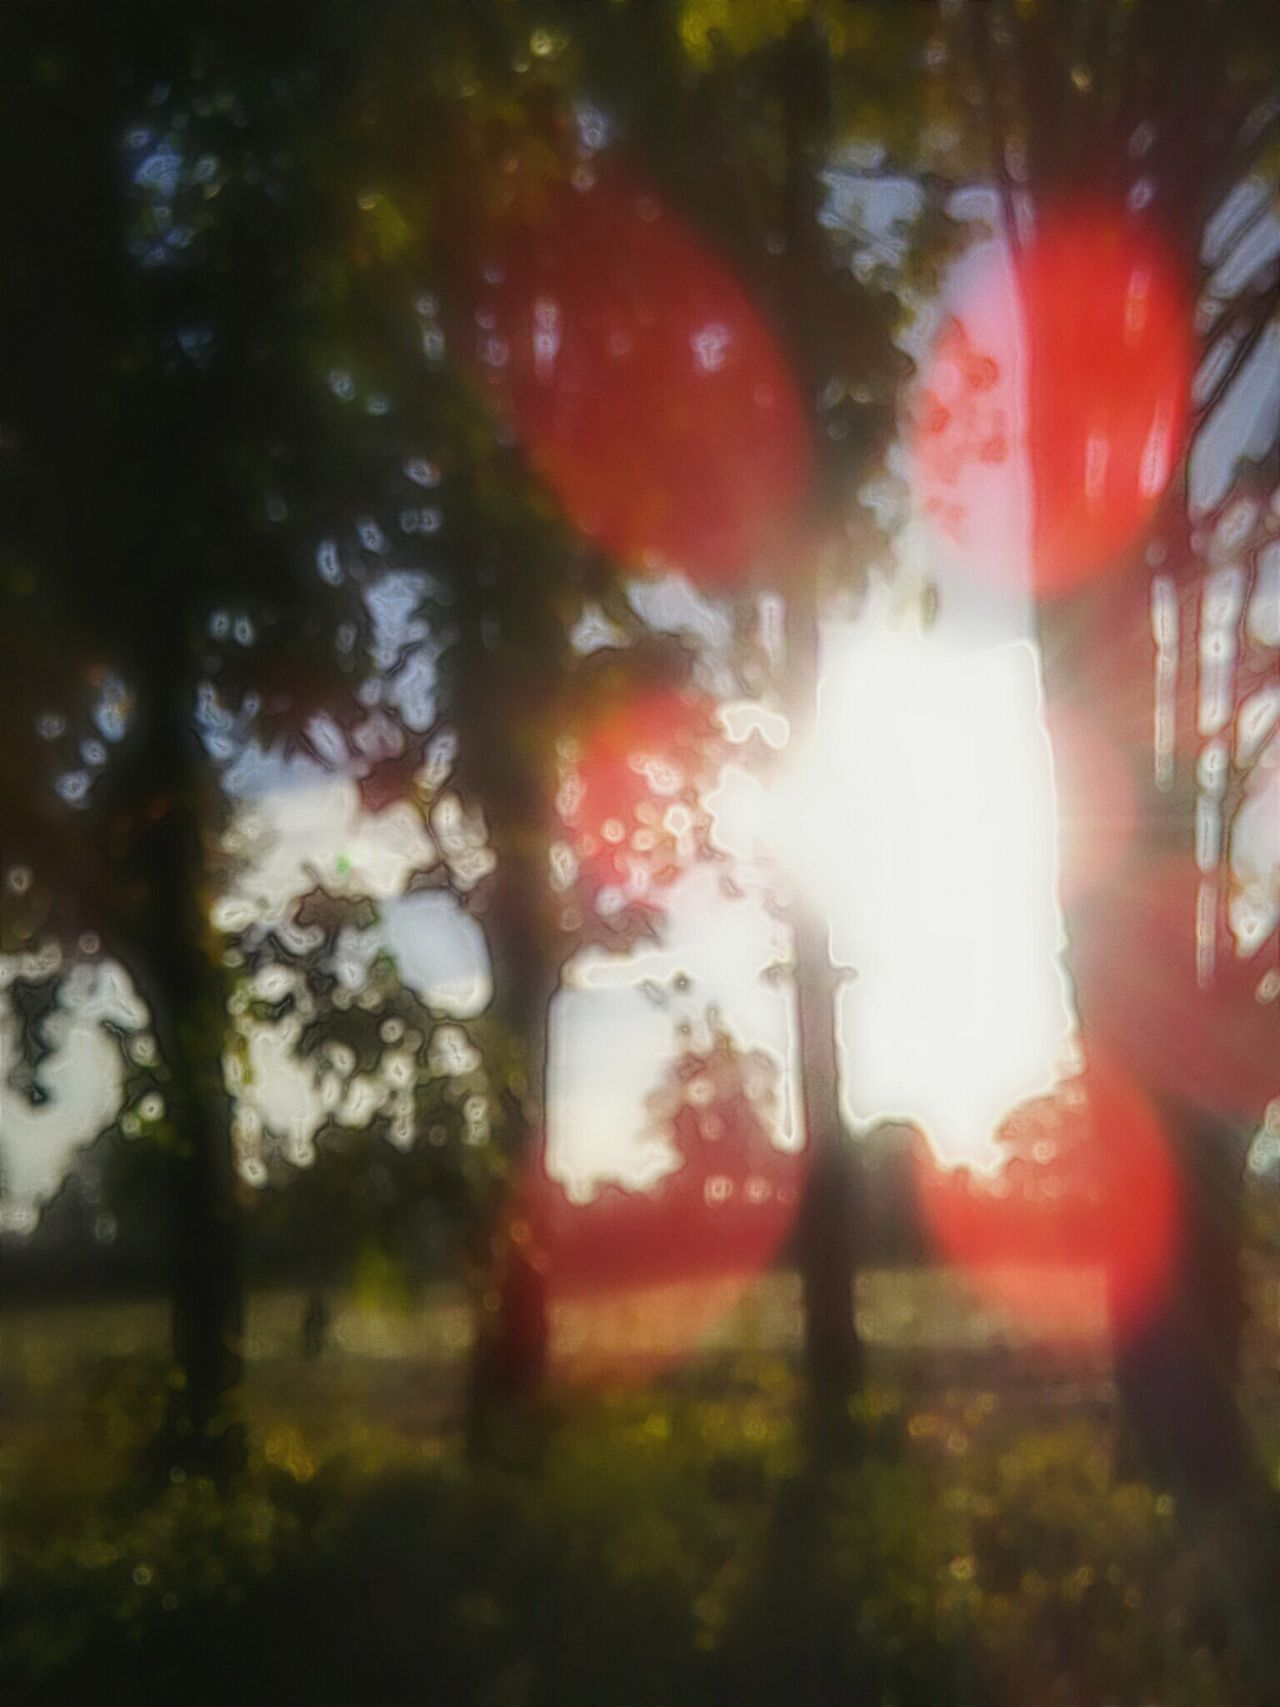 Sunrise_Collection Sun Coming Up Open Edit For Everyone Be Still My Heart Check This Out Nature_collection Nature Photography Trees Tree Lover Blur Beautiful Blur Trees Sun And Sky Outdoor Photography Color Palette Birds Eye View Eyeemphoto EyeEm Gallery Showcase August Essence Of Summer Focus On Foreground Focus Focus On Background Unfocused So What